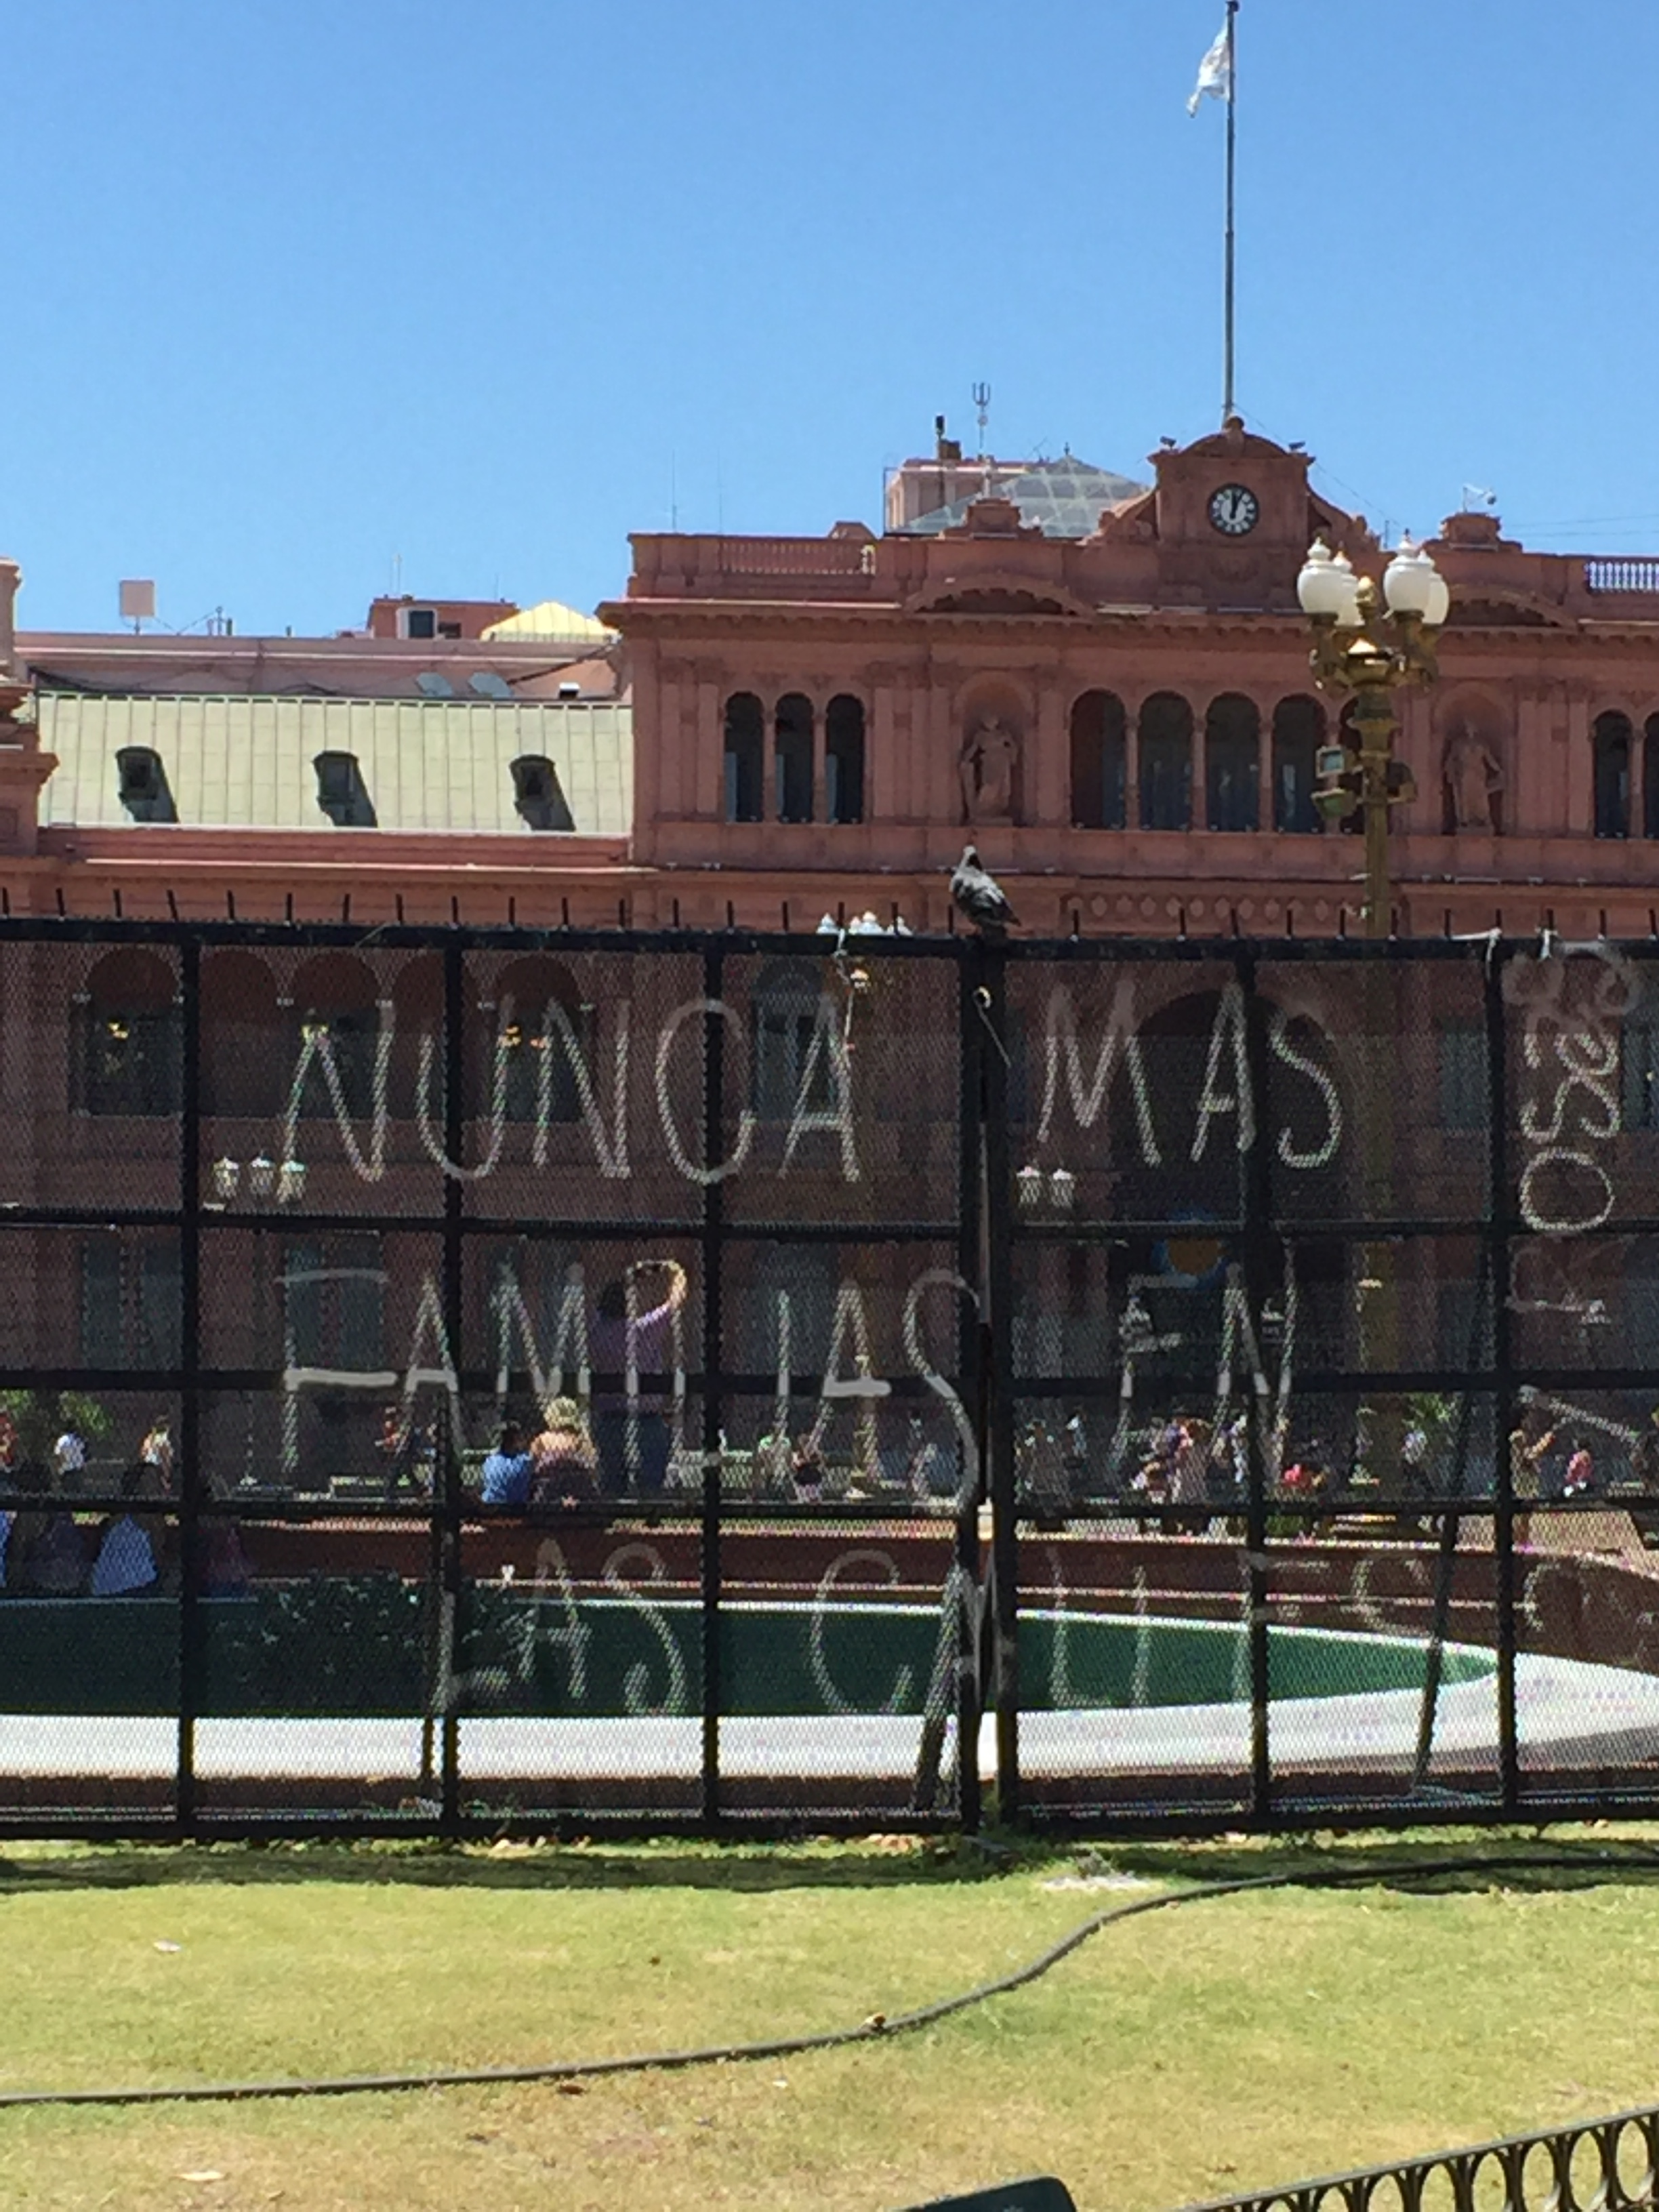 """Someone has painted a message on the chain link fence surrounding the Casa Rosada (Pink House) : """"Nunca mas familias en las calles,"""" meaning """"No more families in the streets,"""" apparently criticizing homelessness in the city."""